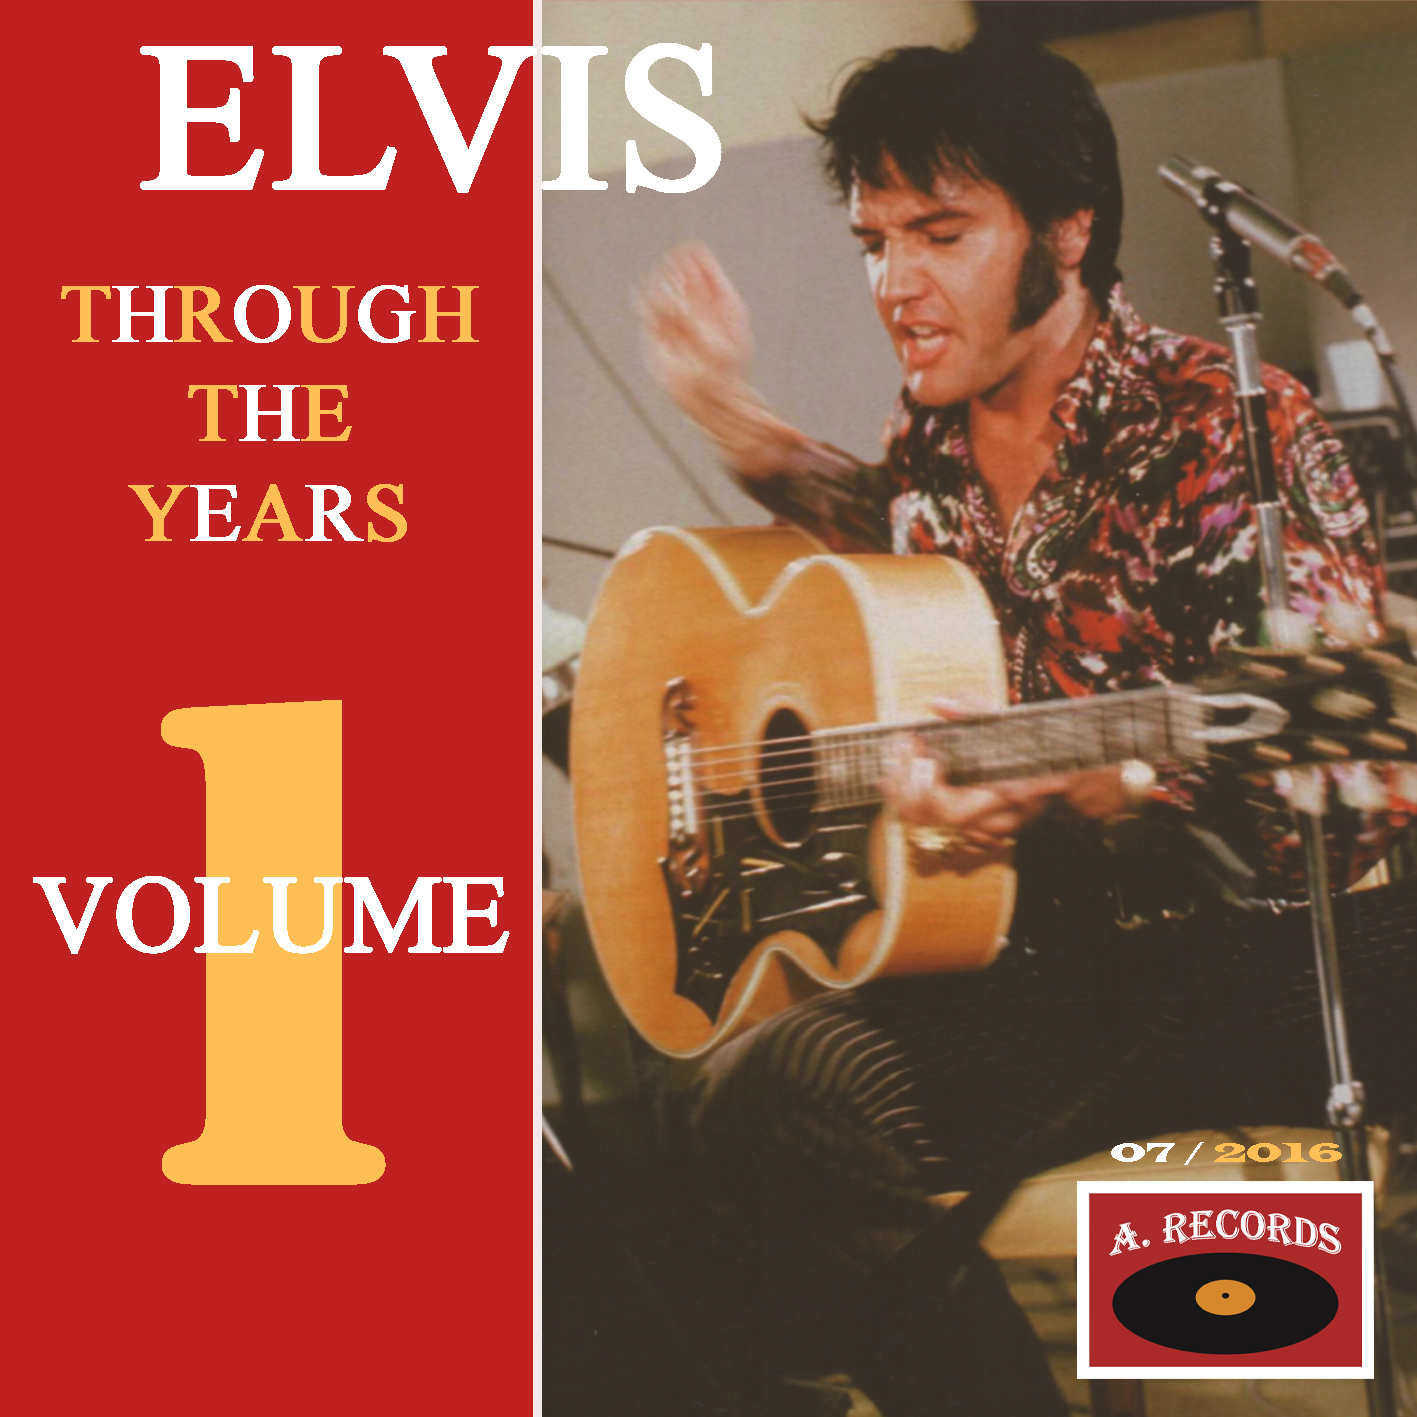 Elvis Through The Years - Volume 1 (July 2016)